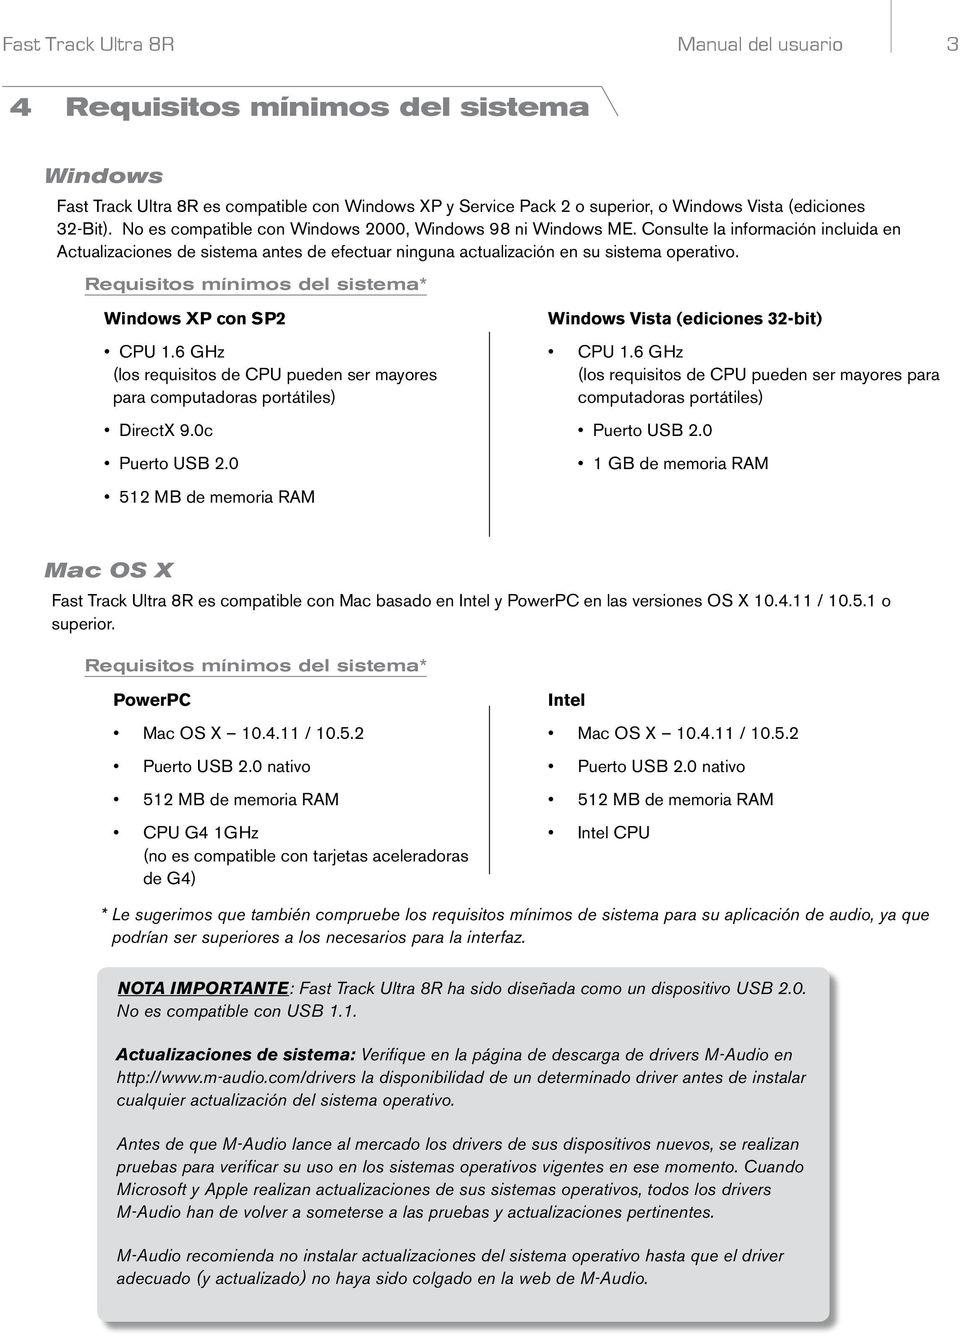 Requisitos mínimos del sistema* Windows XP con SP2 CPU 1.6 GHz (los requisitos de CPU pueden ser mayores para computadoras portátiles) DirectX 9.0c Puerto USB 2.